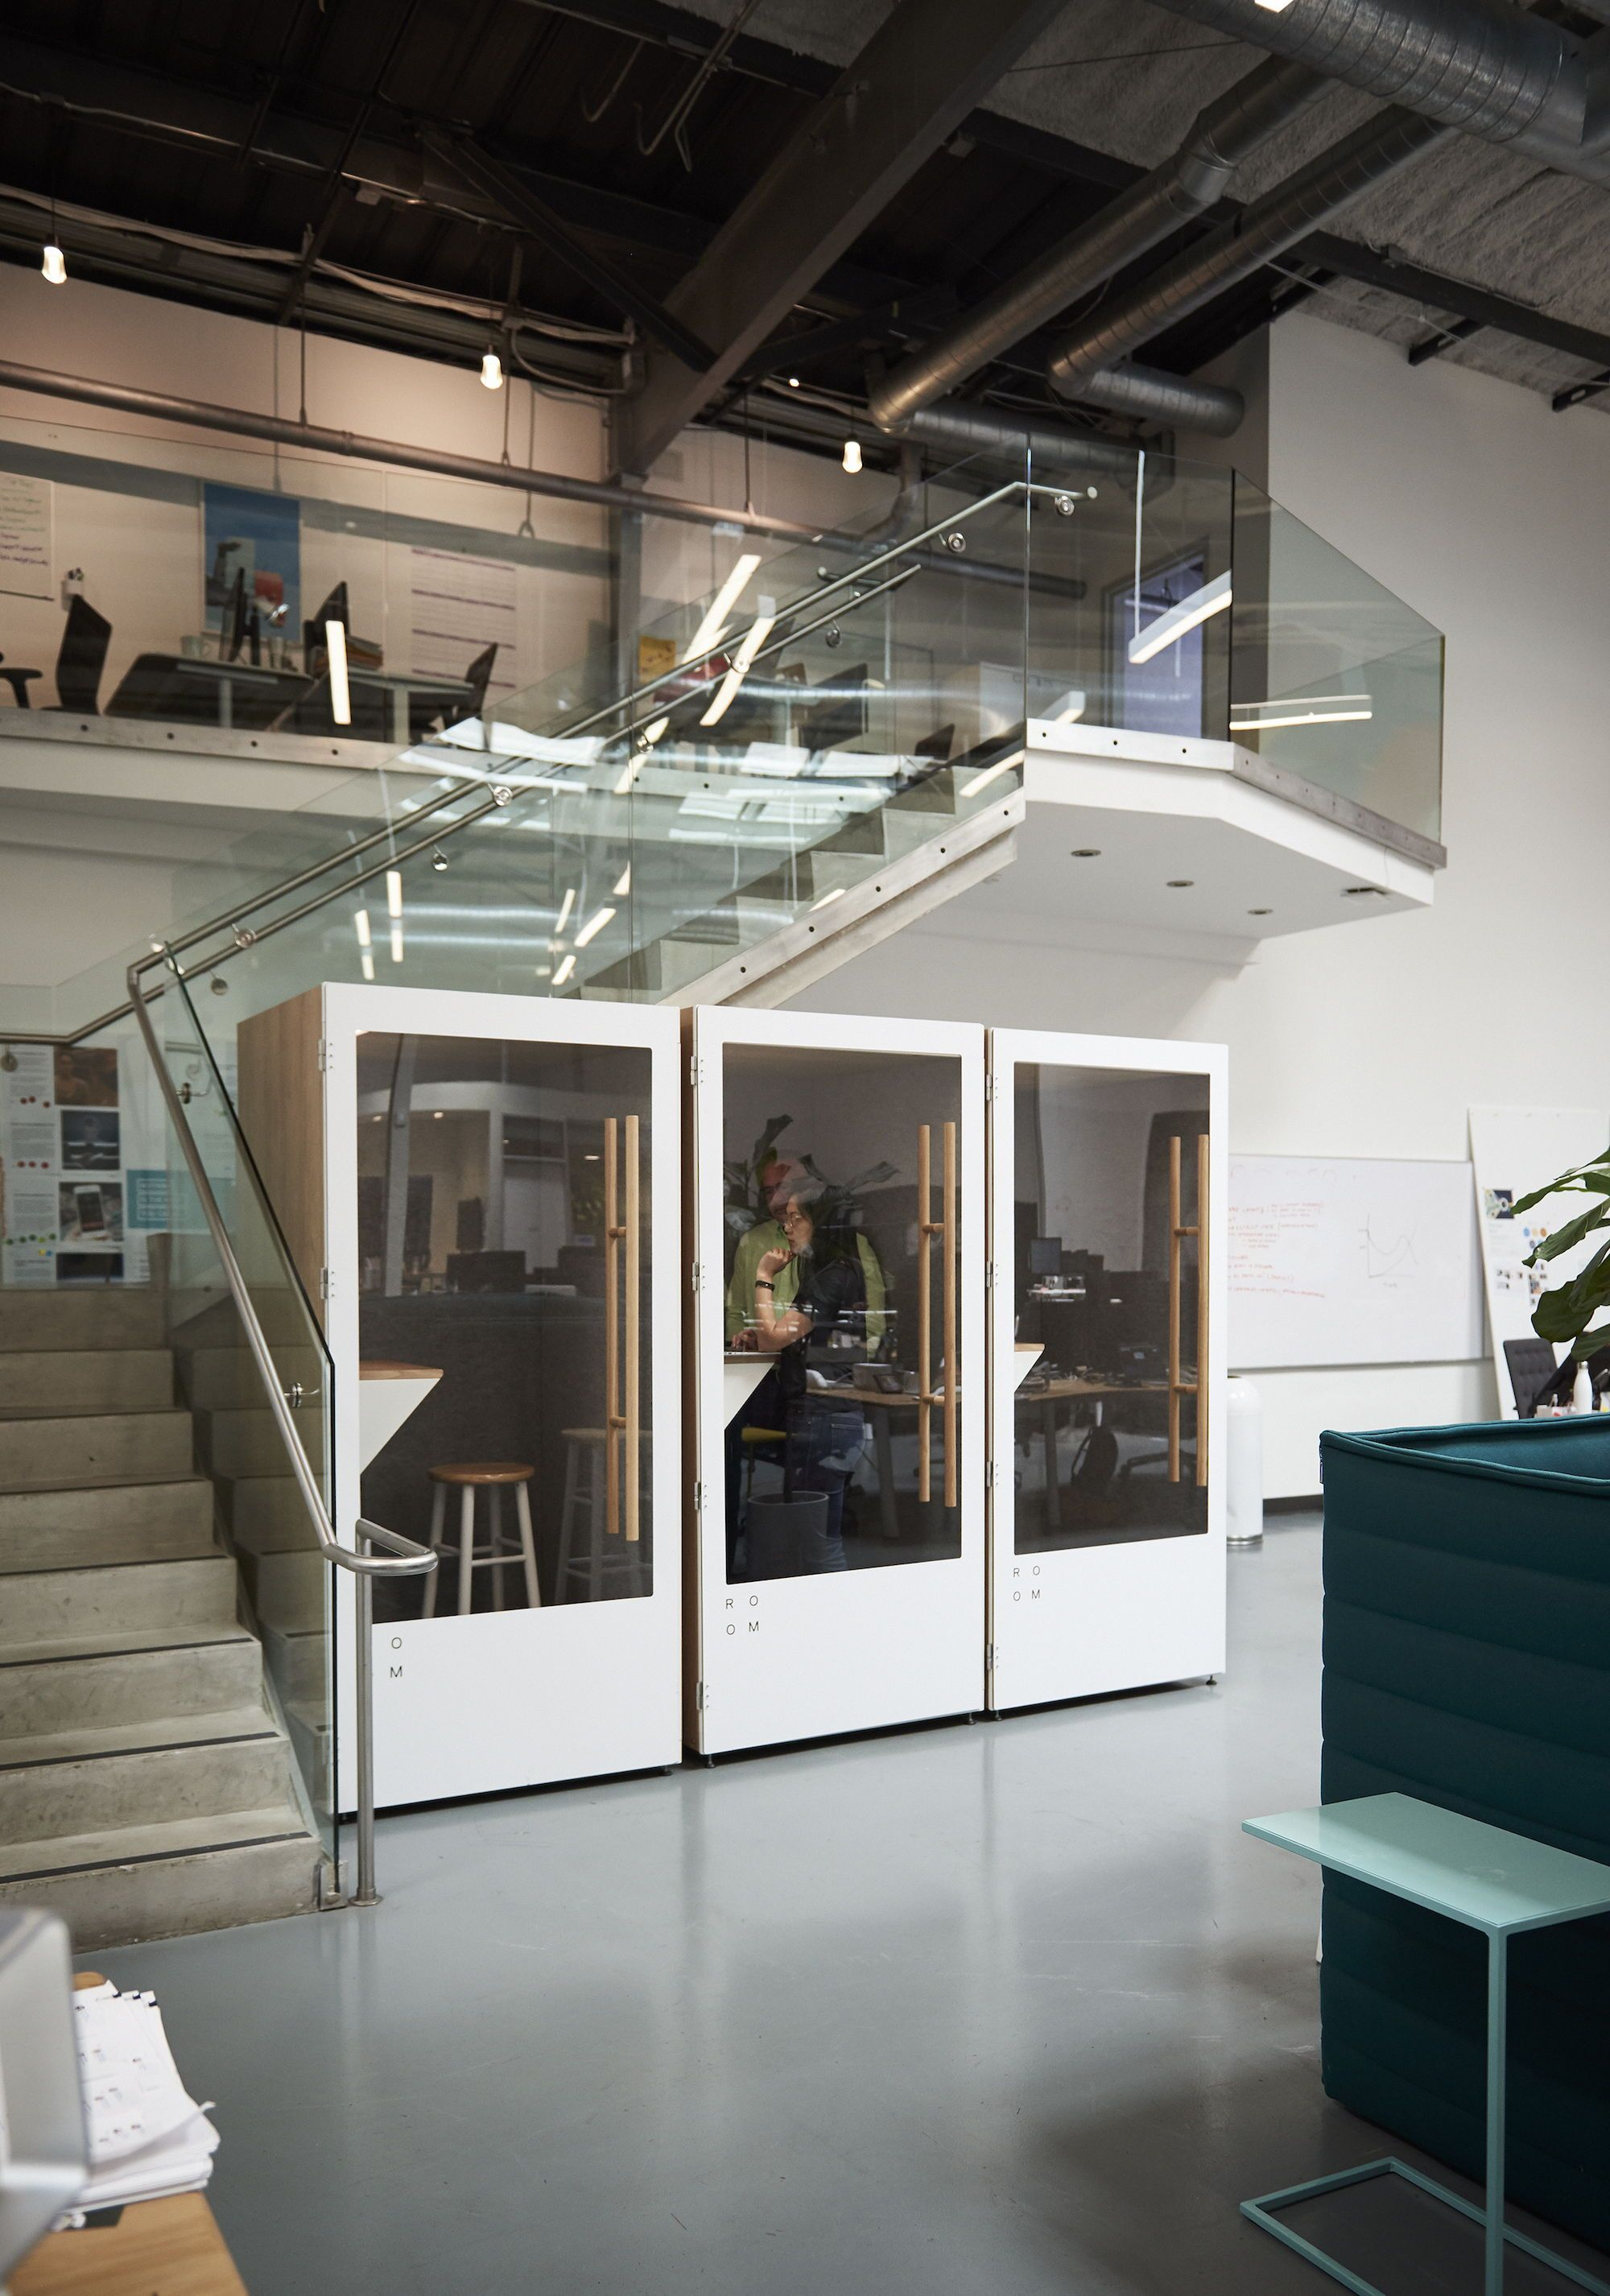 Soundproof phone booths by ROOM create sound privacy in ...